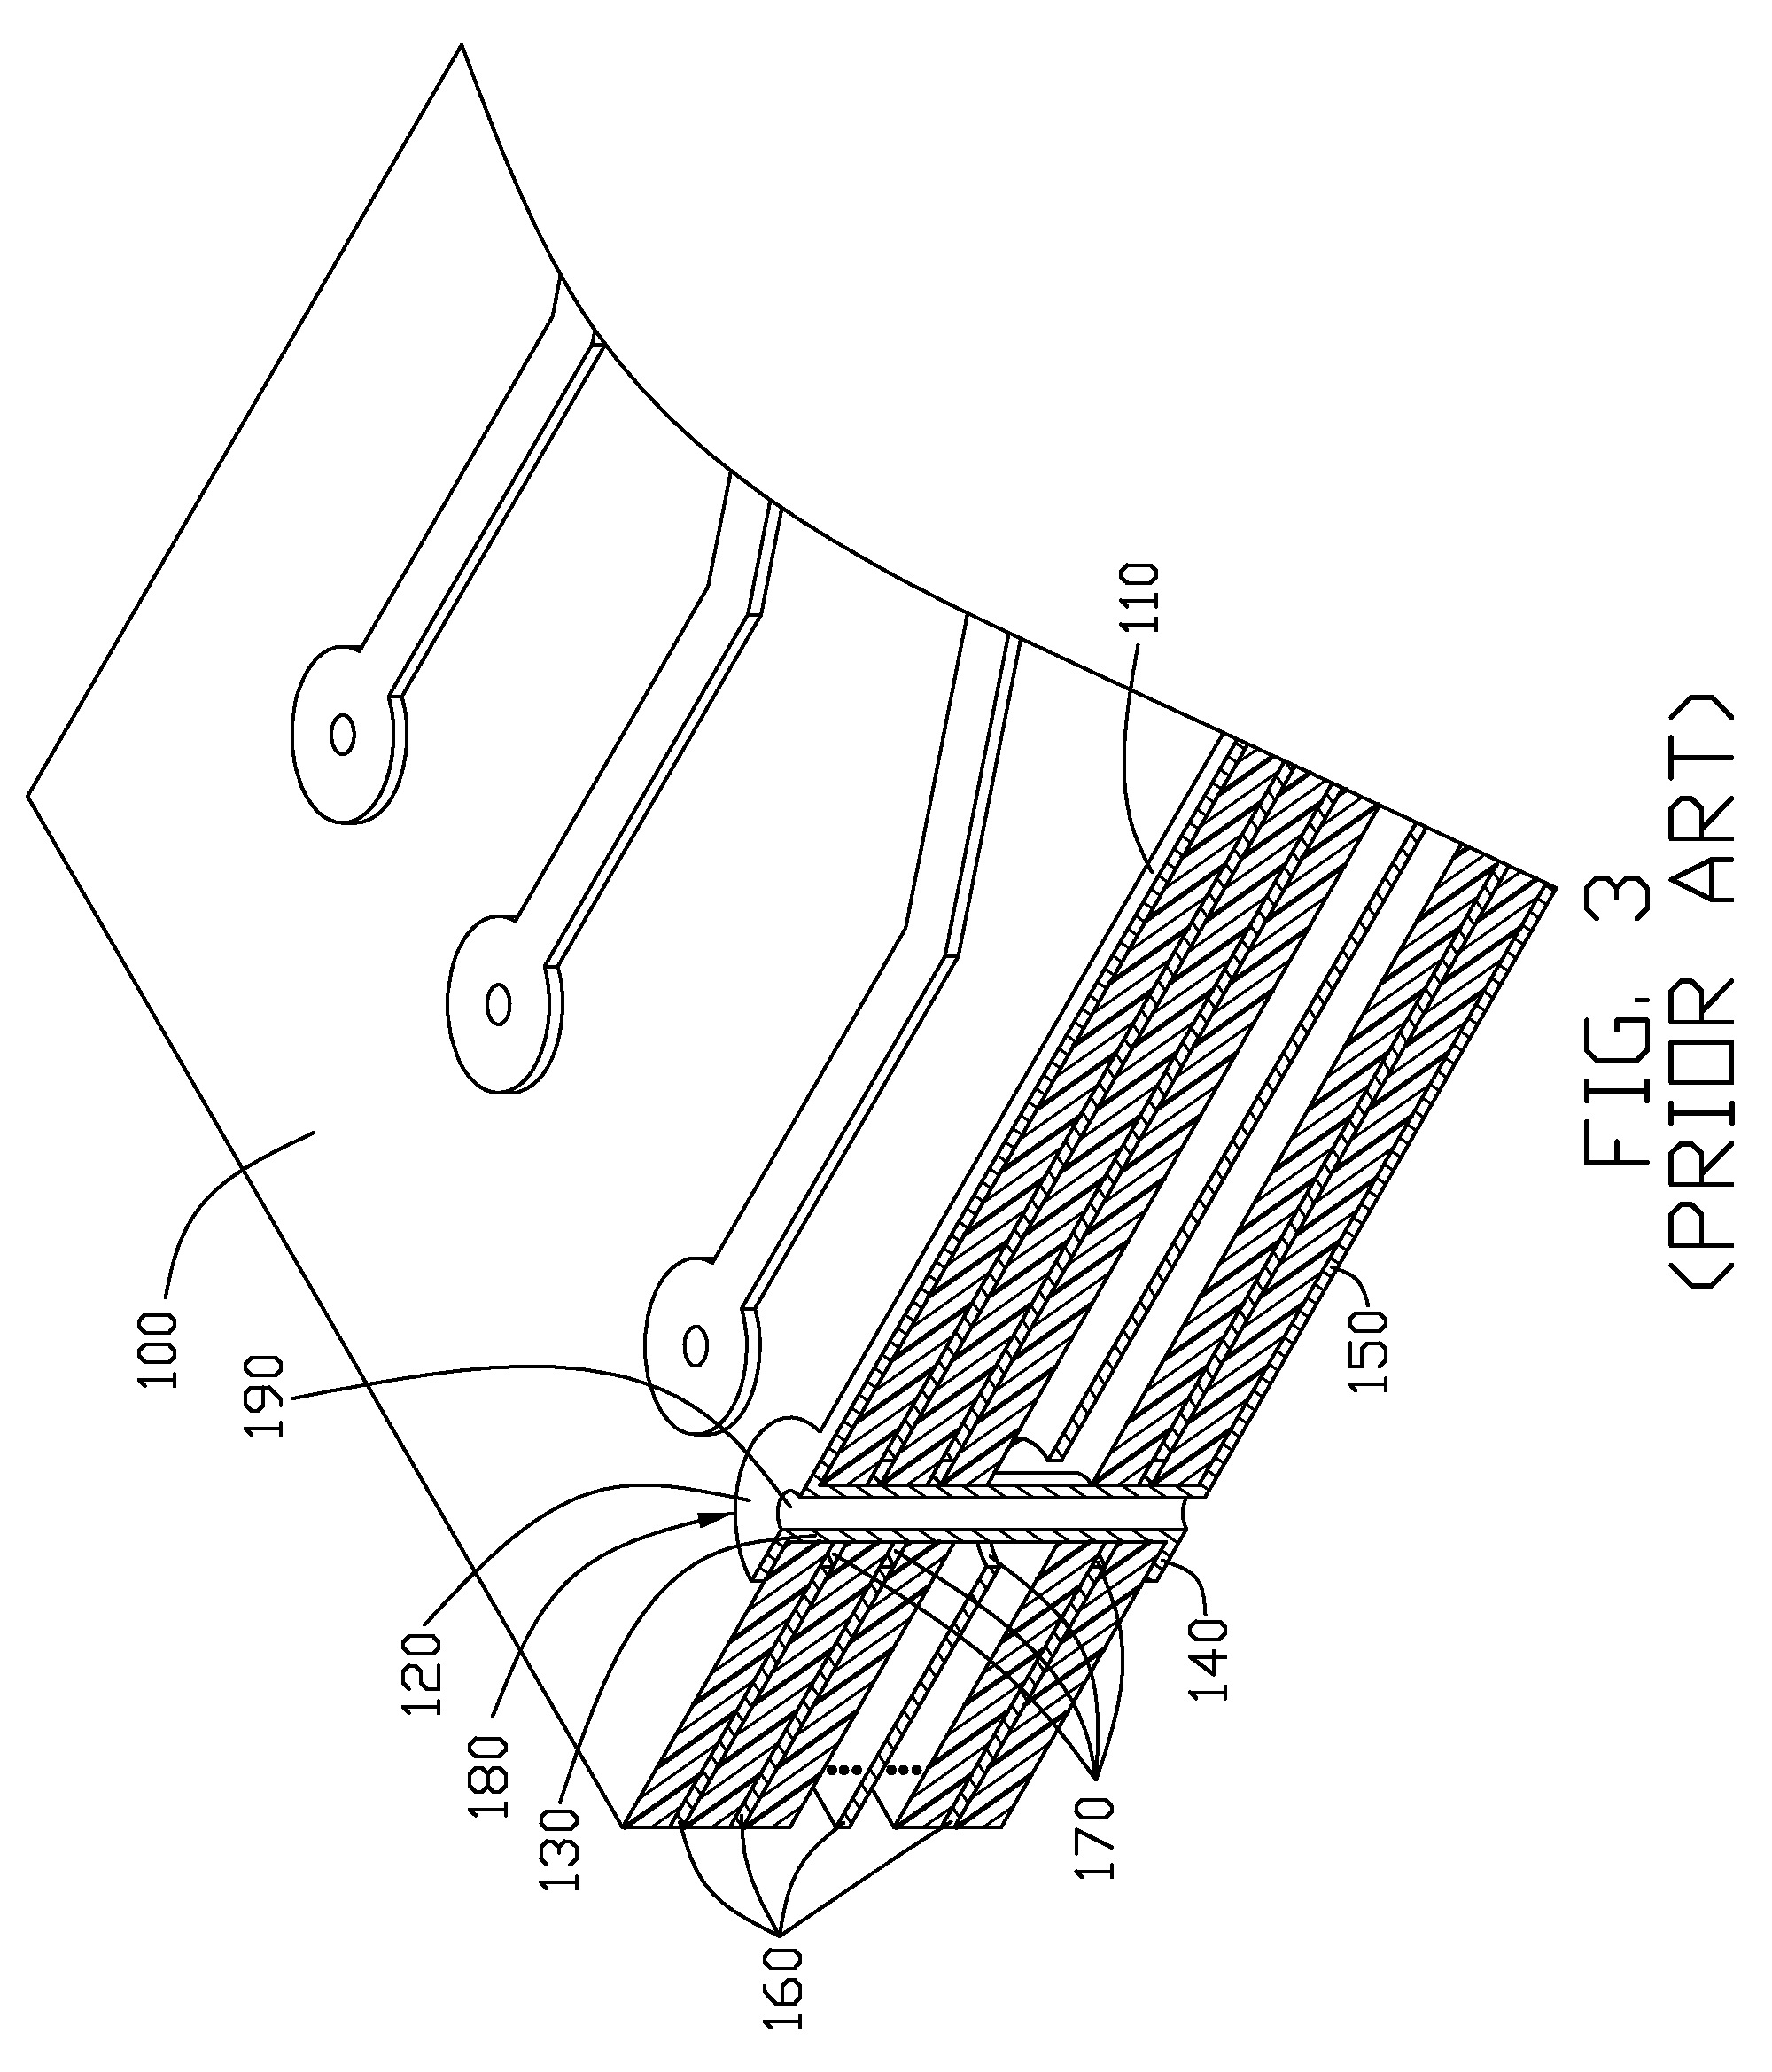 patent us8067700 - via structure of printed circuit board